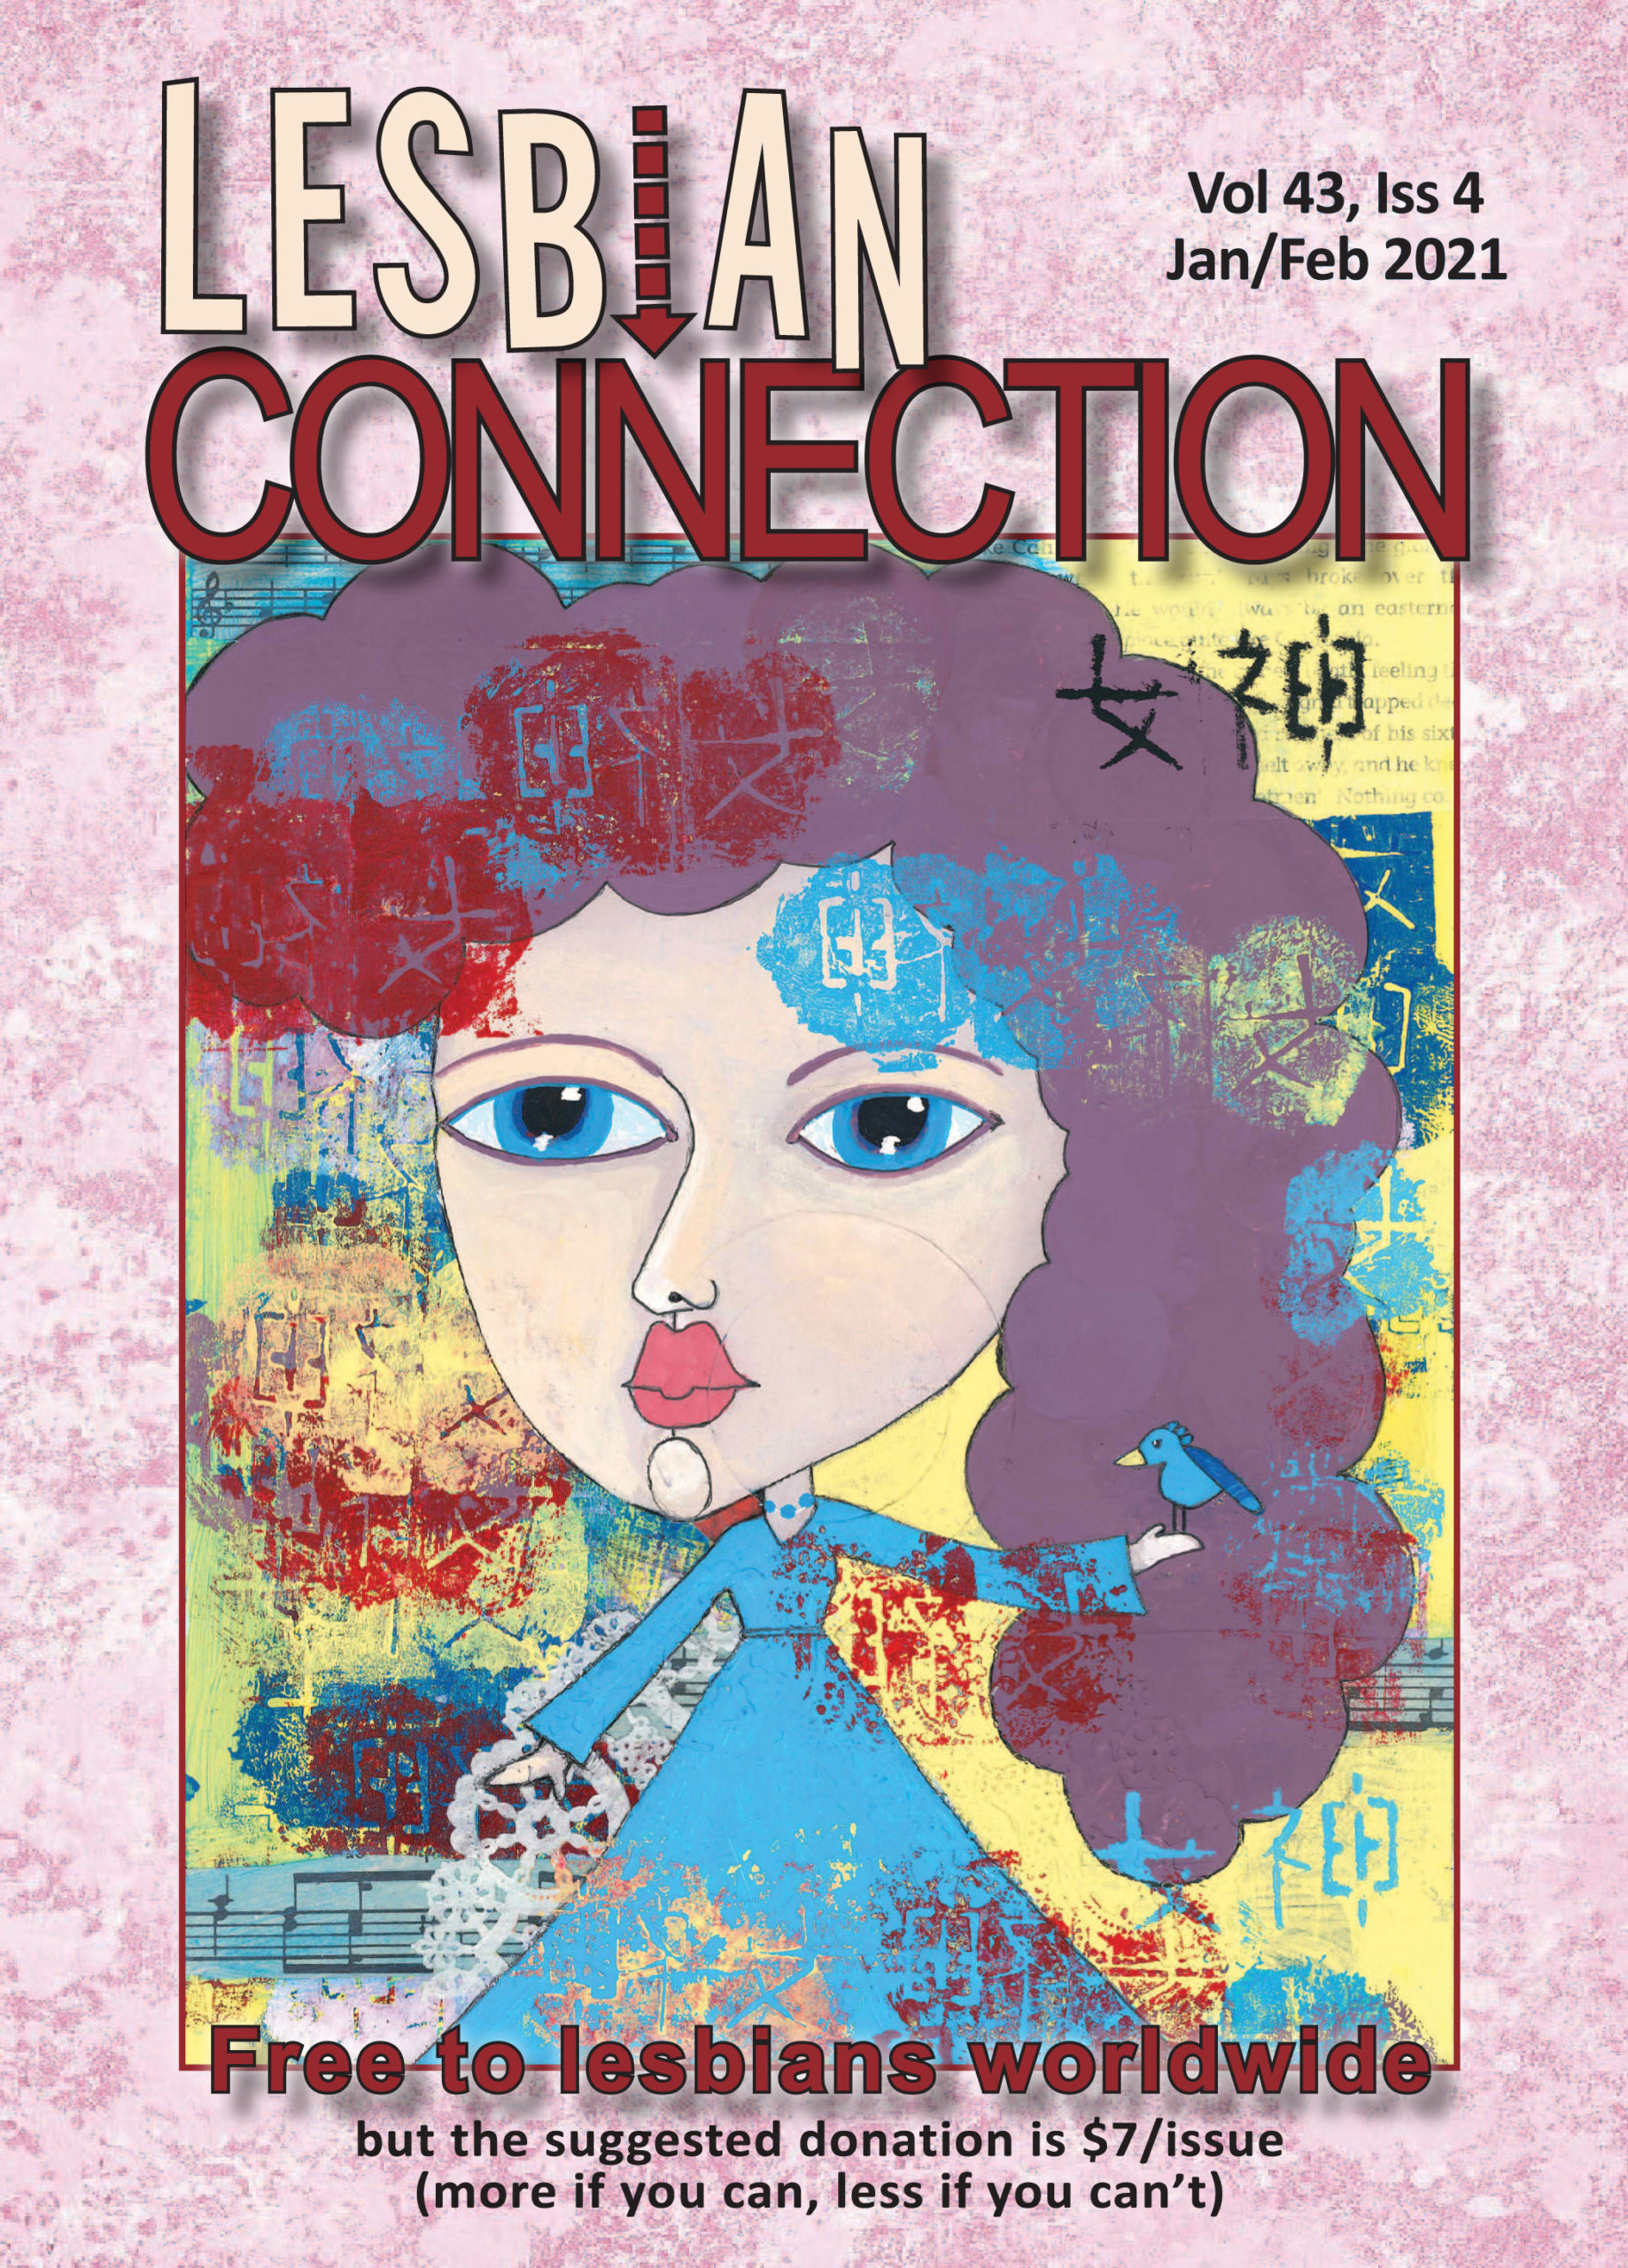 LC Cover Jan/Feb 2021 - cartoon female w/ large blue eyes & dress faces us with an abstract-multicolored background